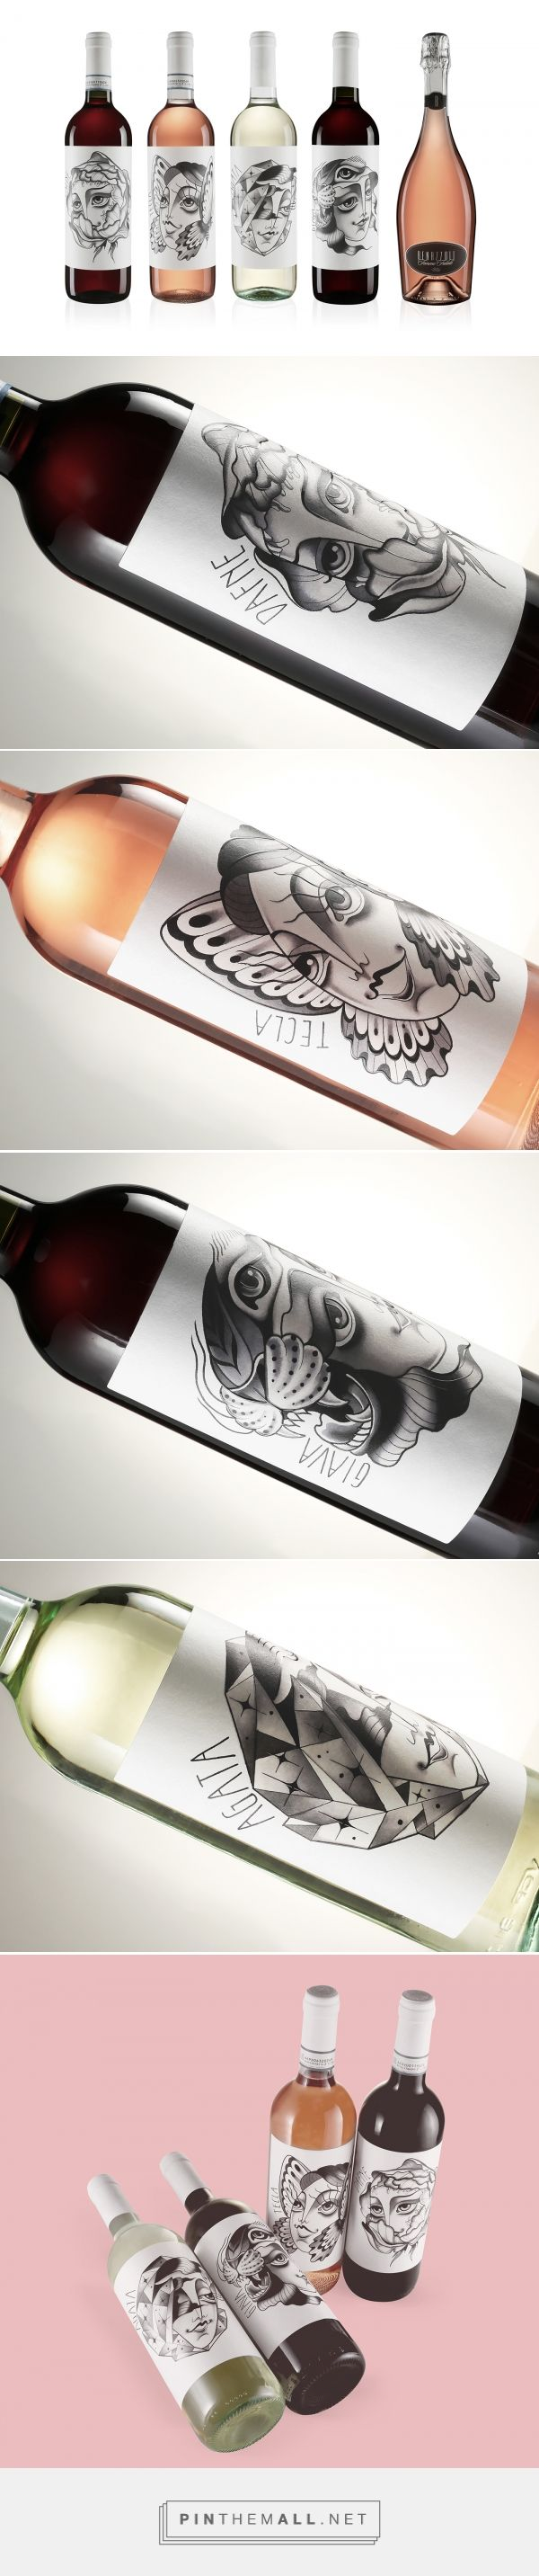 Benazzoli wine packaging on Behance by  Stefano Torregrossa Verona, Italy curated by Packaging Diva PD. Each wine represented by an illustration whose style is evocative, dreamlike and magical. Four imaginary women have a name and have their own single character, their own style and their own truly personal taste.